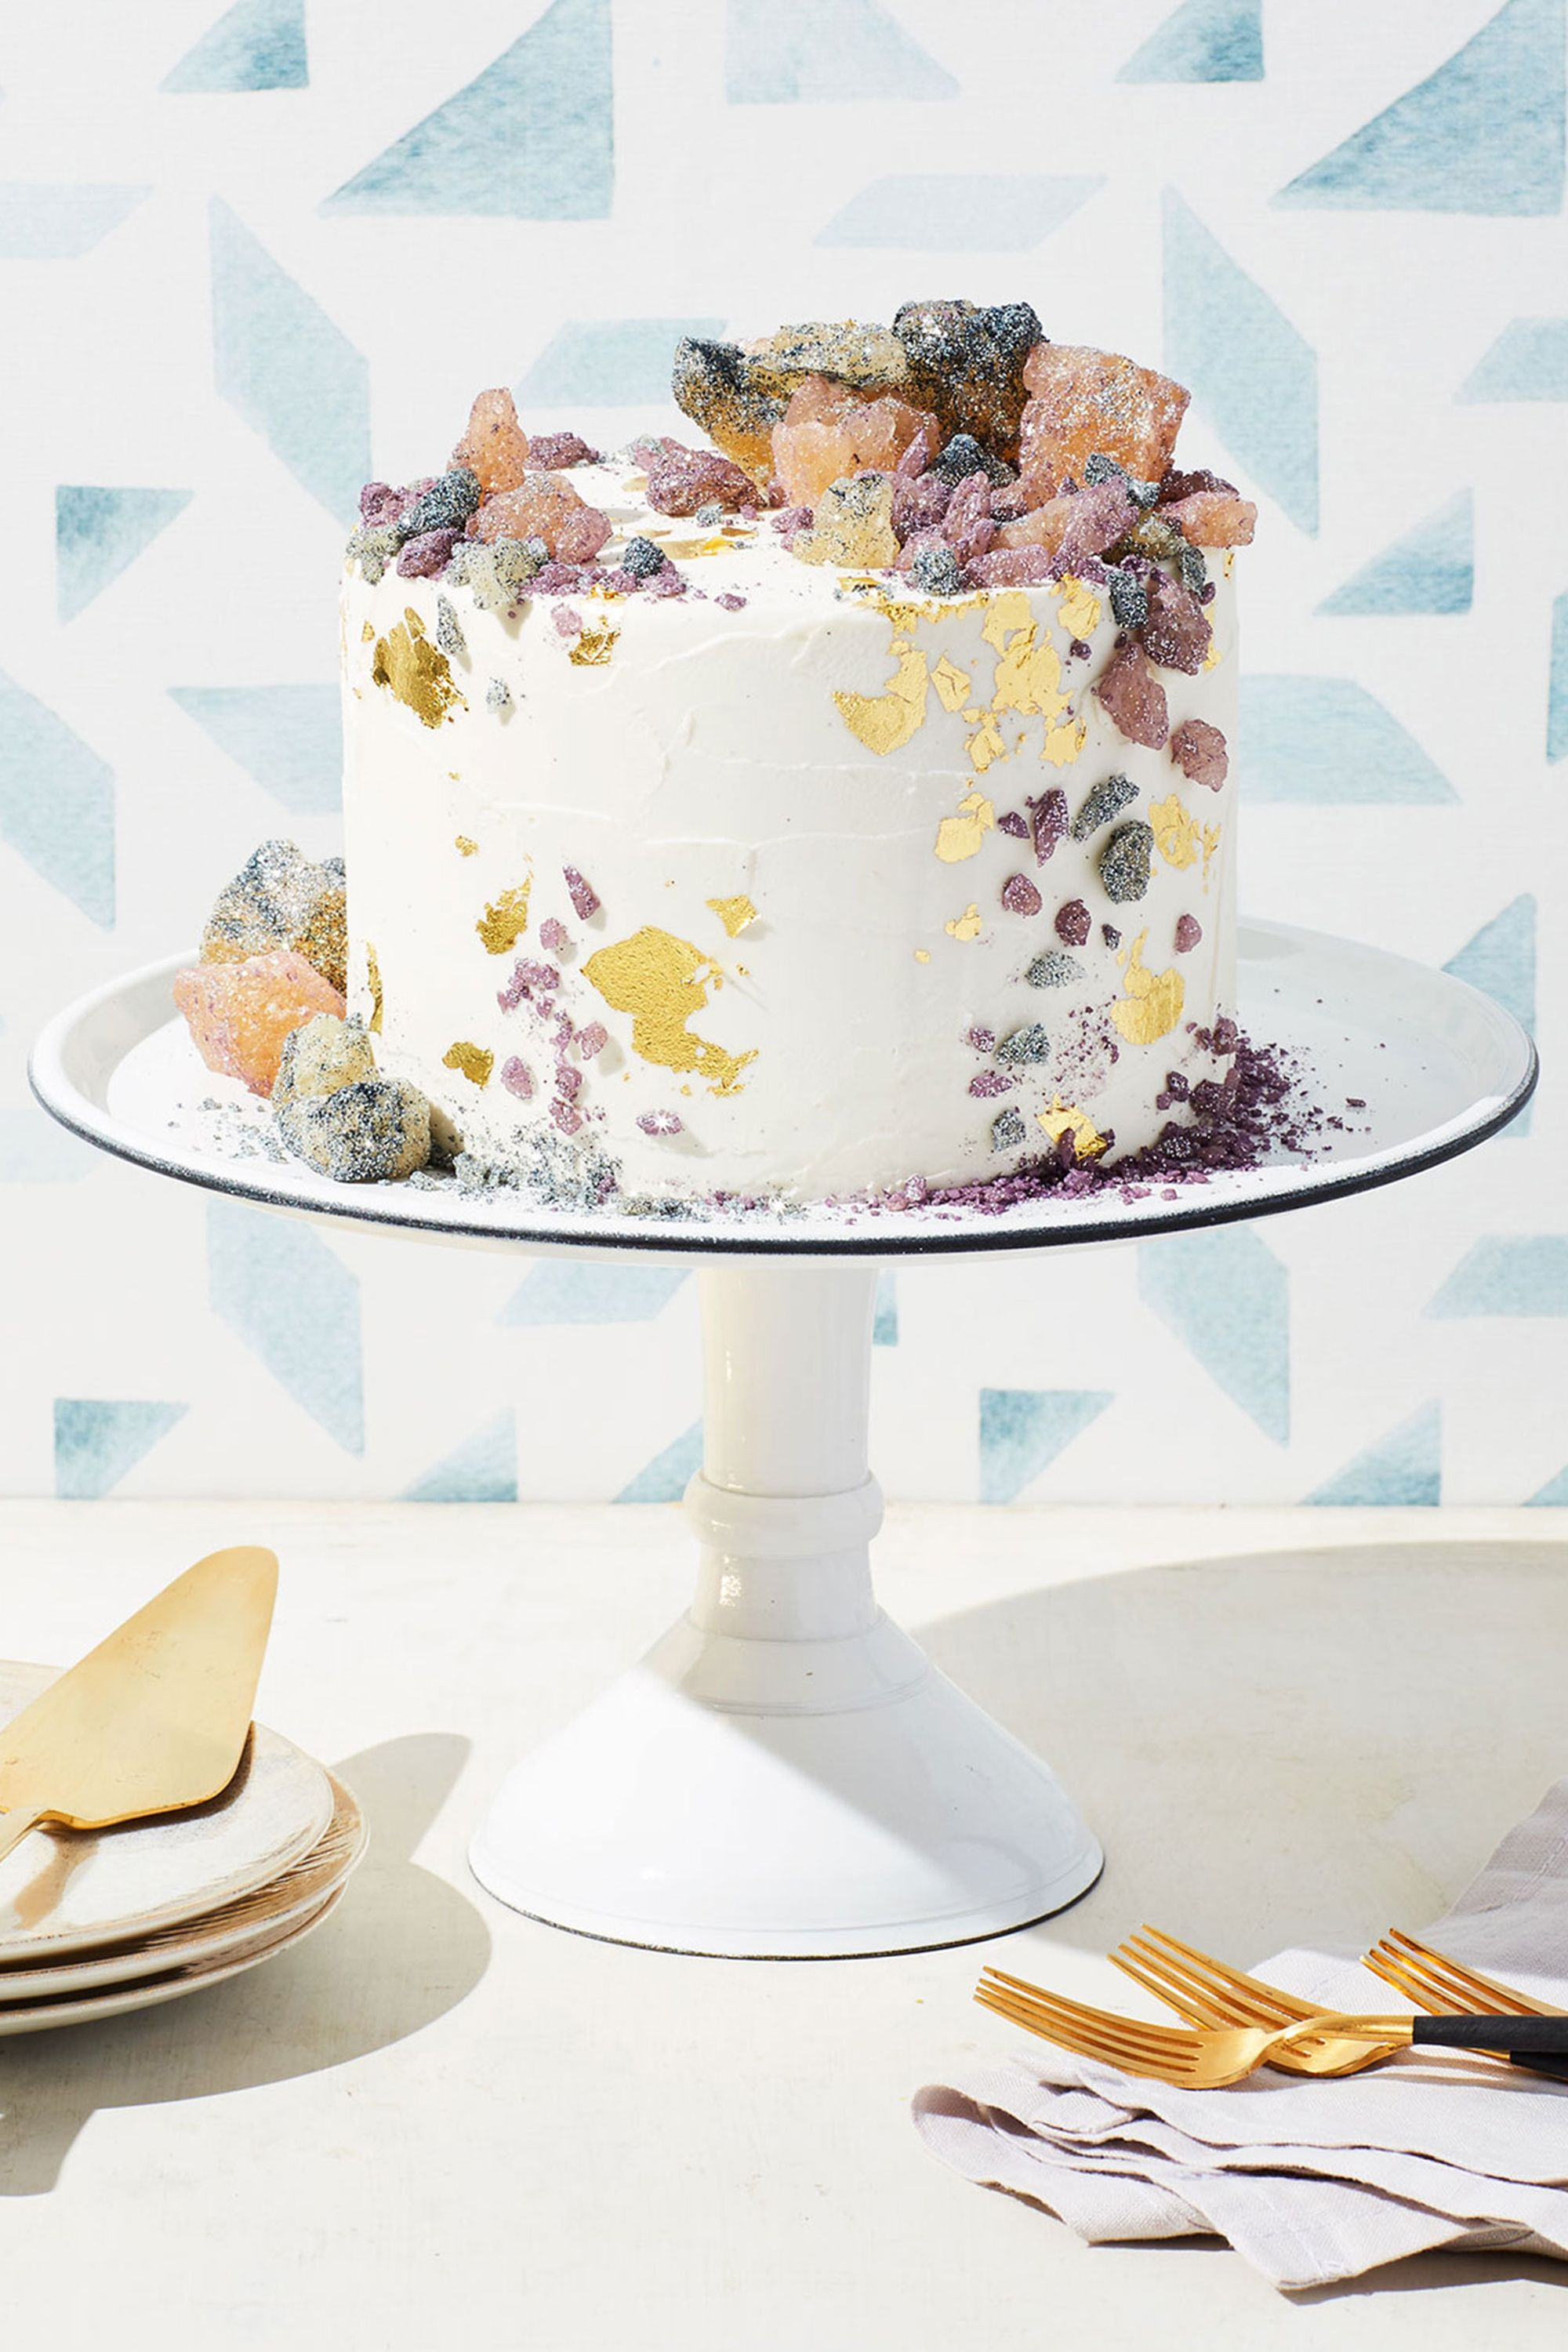 15 Pretty Cakes - Pictures of Beautiful Cakes - Delish.com